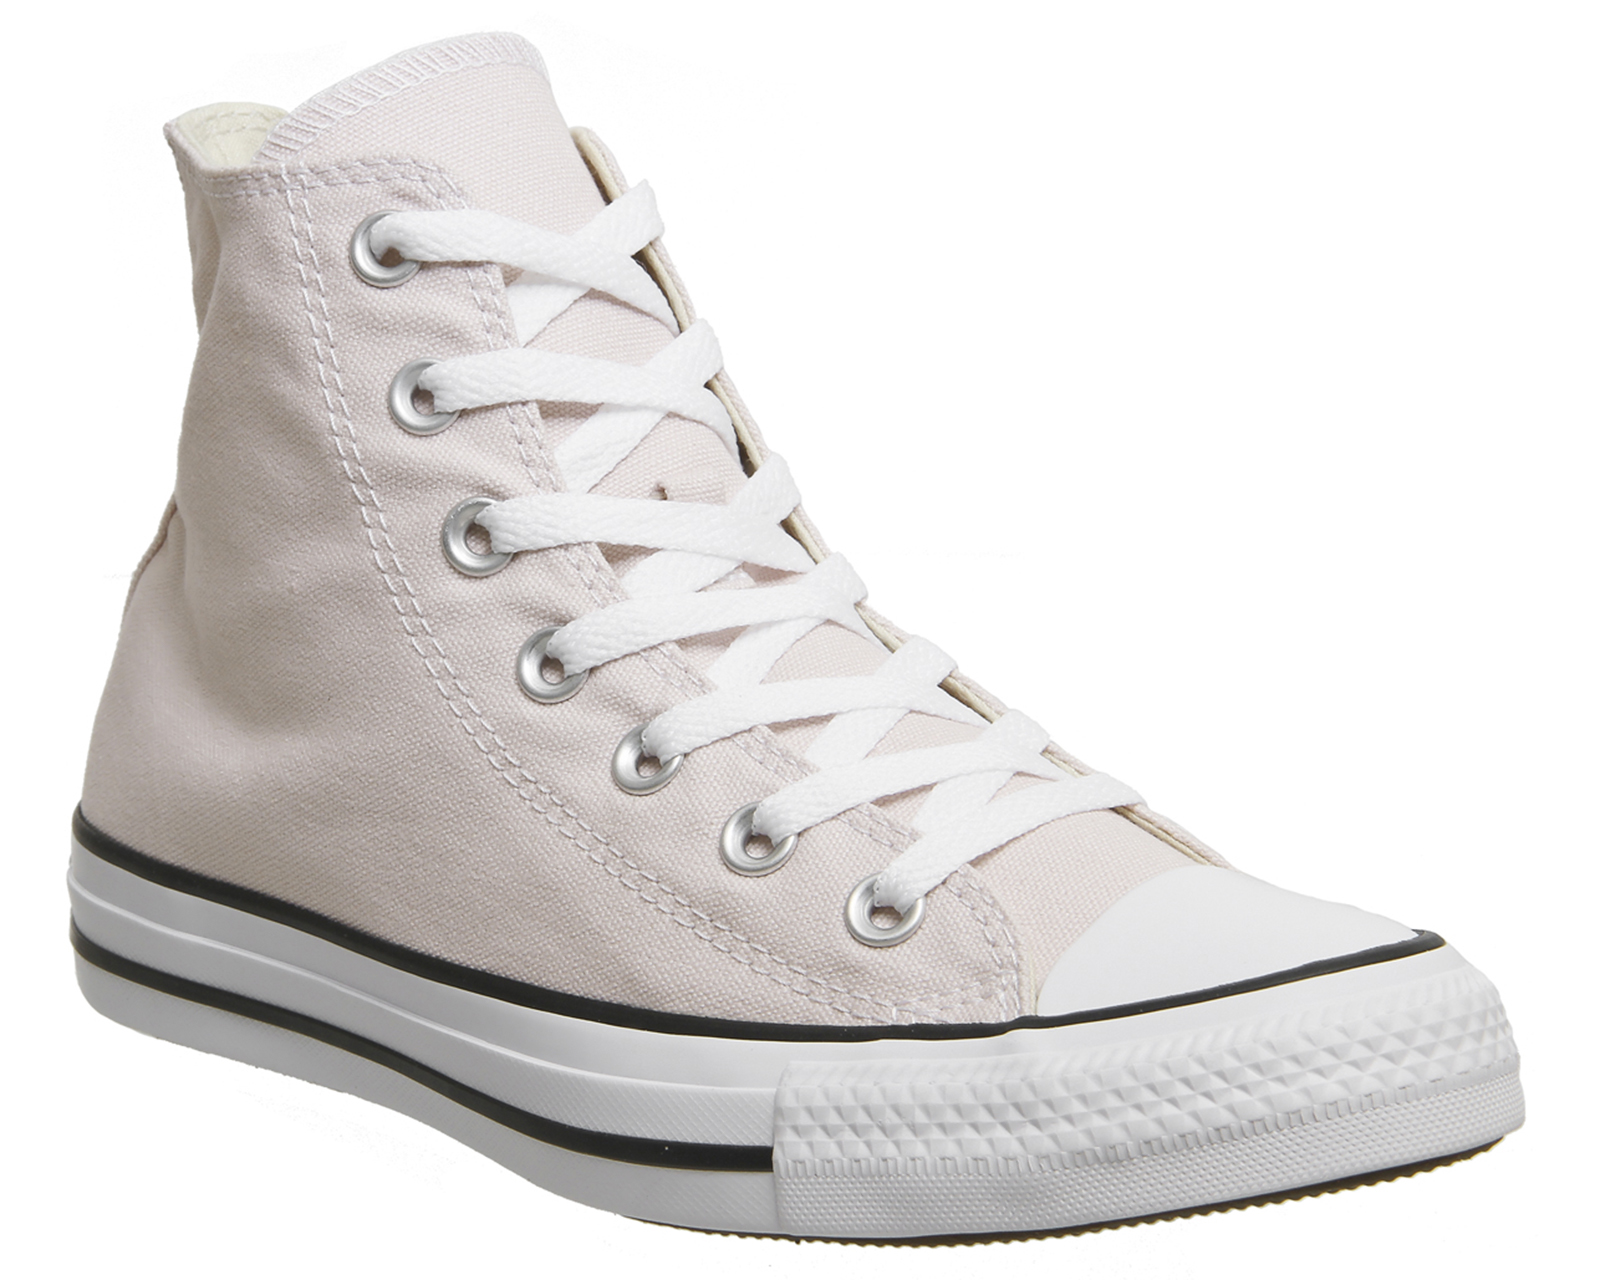 Donna Rosa Converse High Tops UK 1